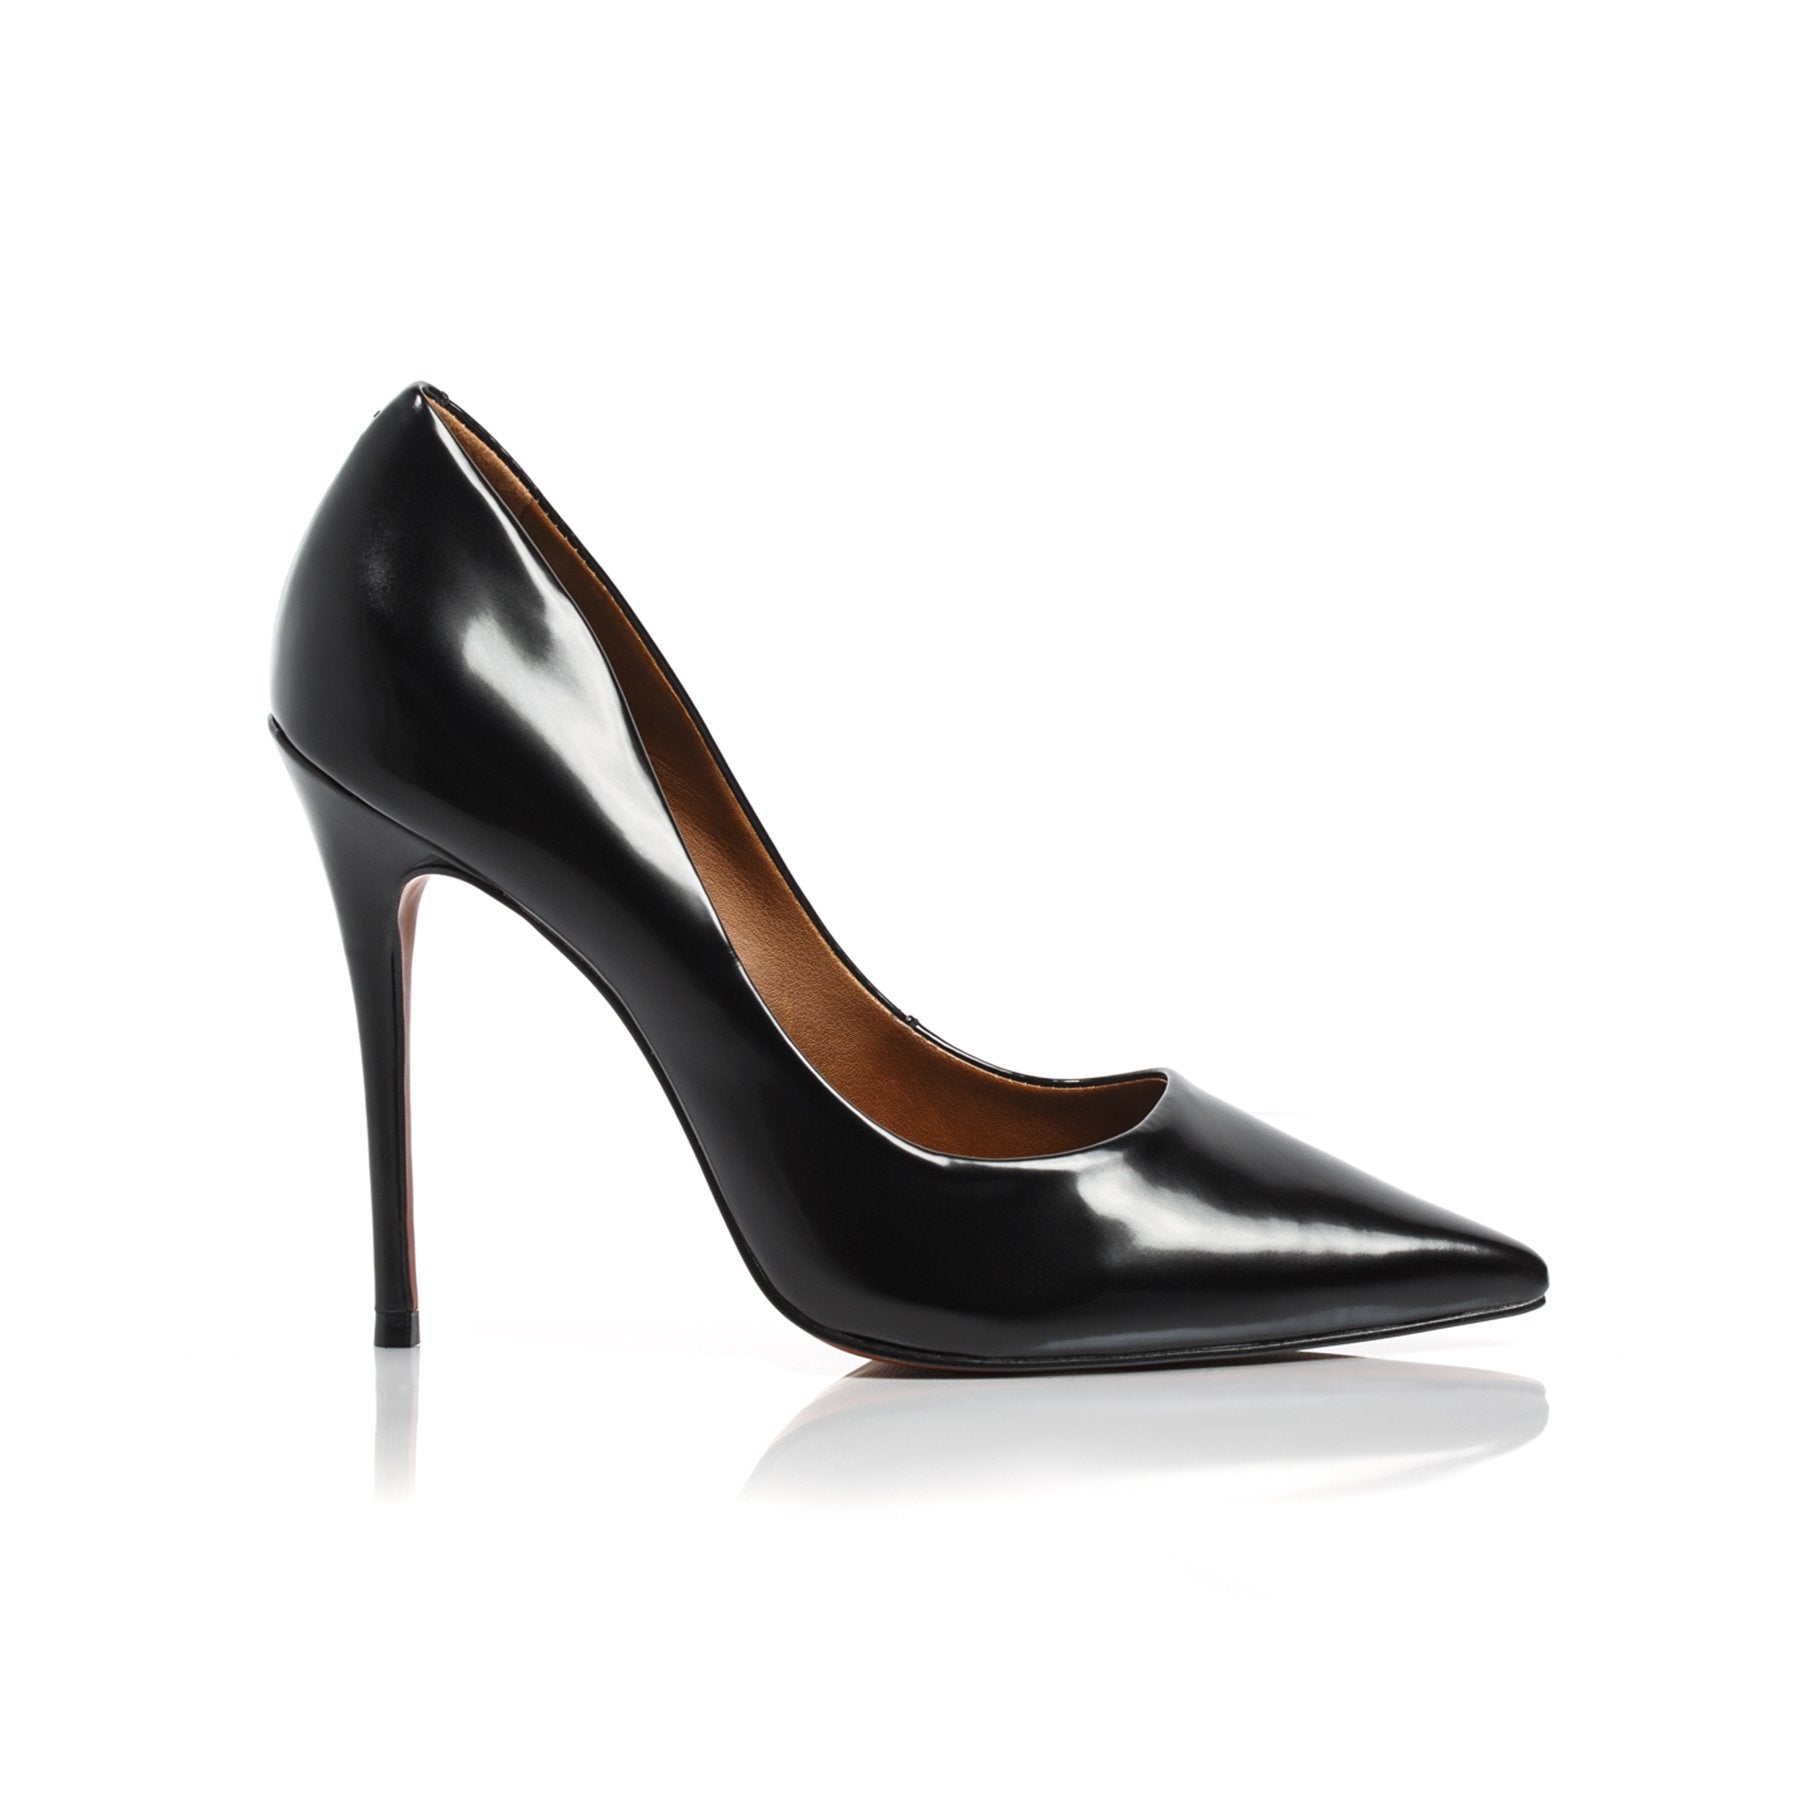 Teeva Black Box Pumps